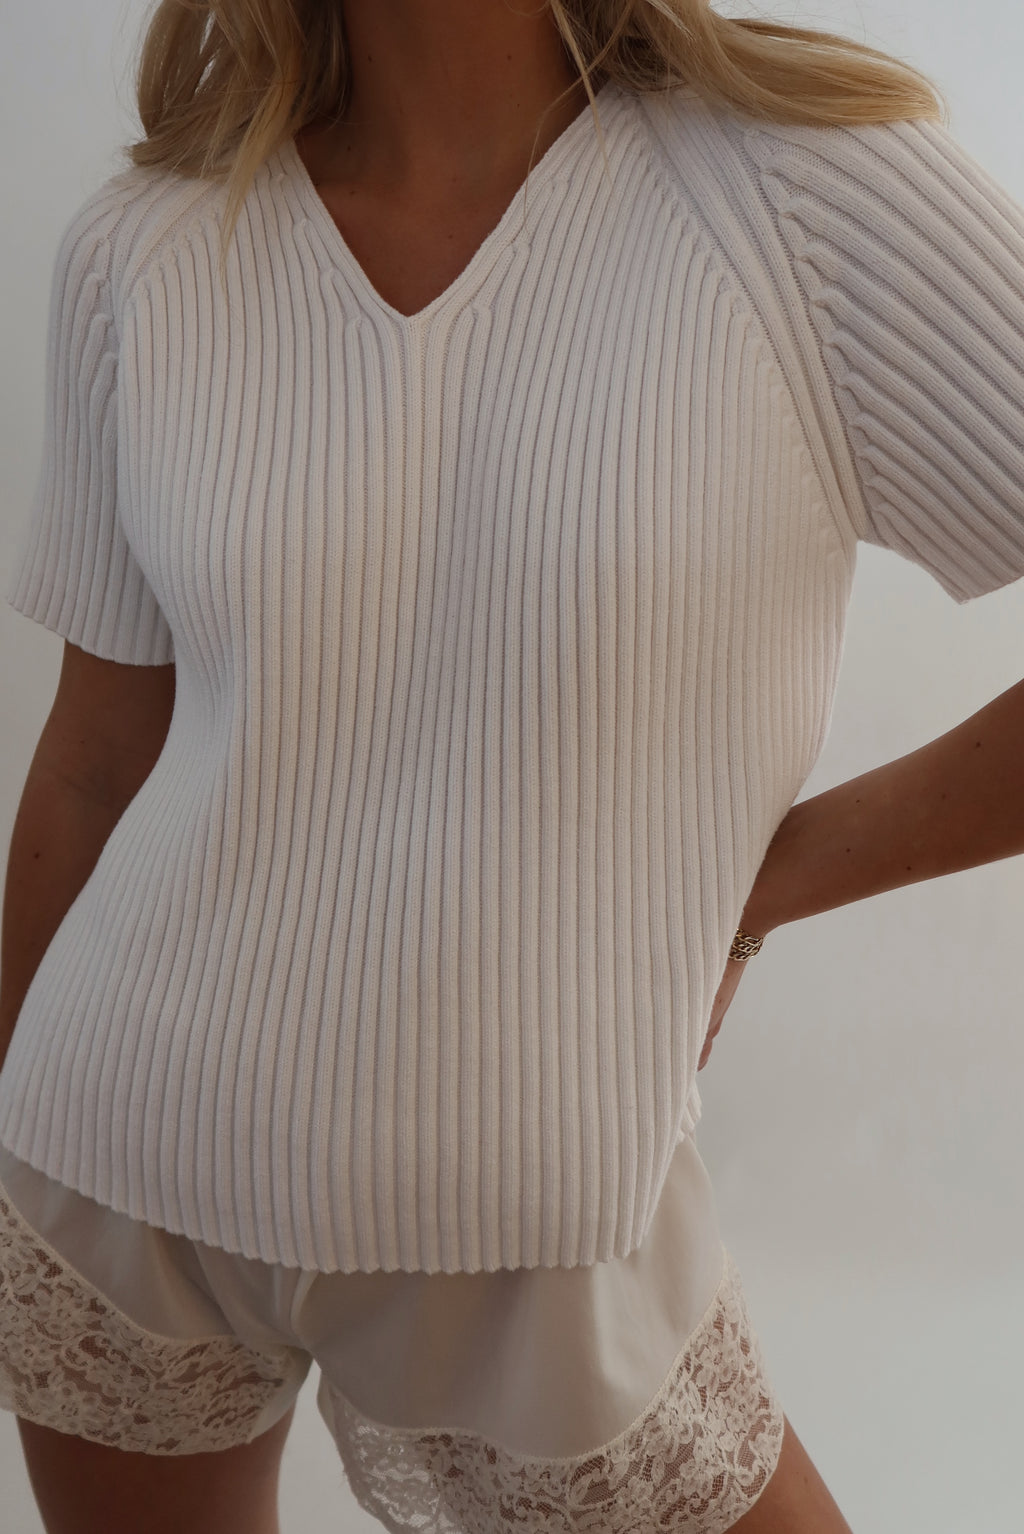 Cotton Ribbed Top (S-M)